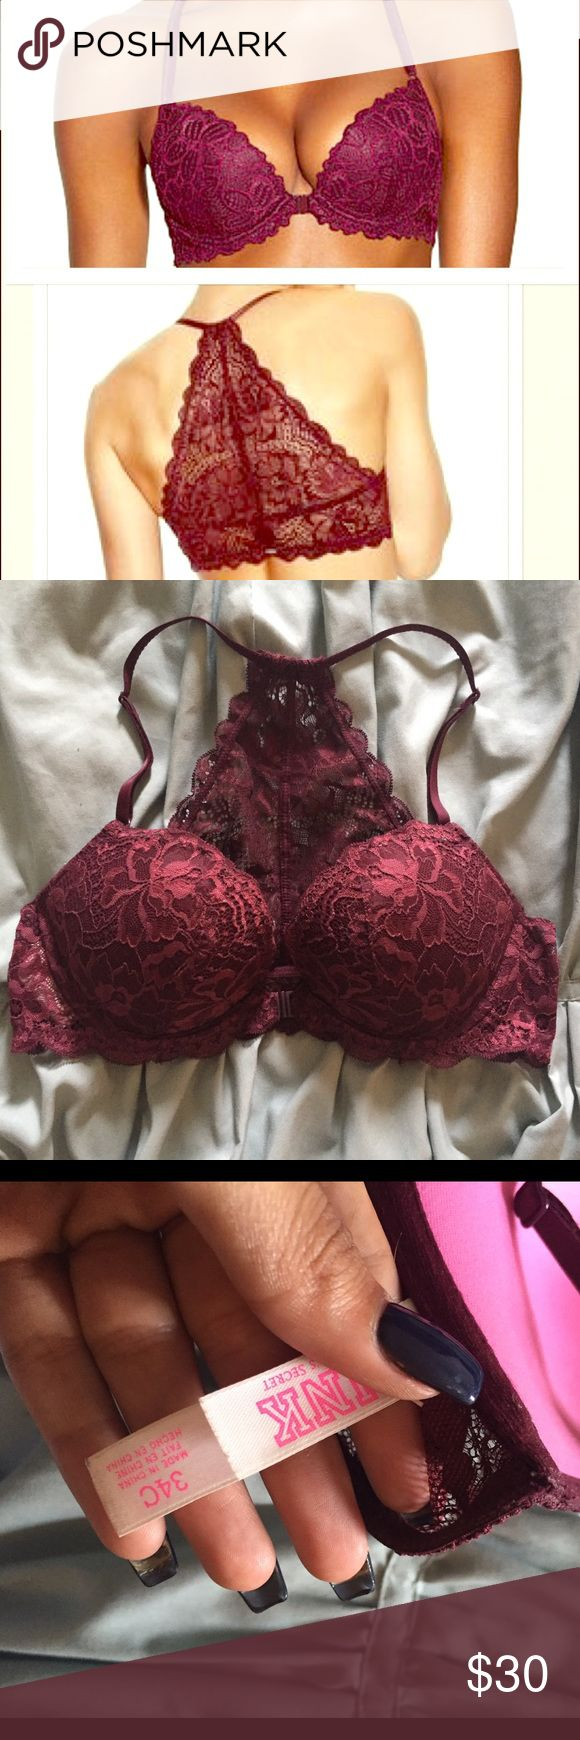 VS pink racerback date push up bra Beautiful with front clasp. Racerback sexy lace , some pushup super sexy burgundy color in excellent condition. PINK Victoria's Secret Intimates & Sleepwear Bras